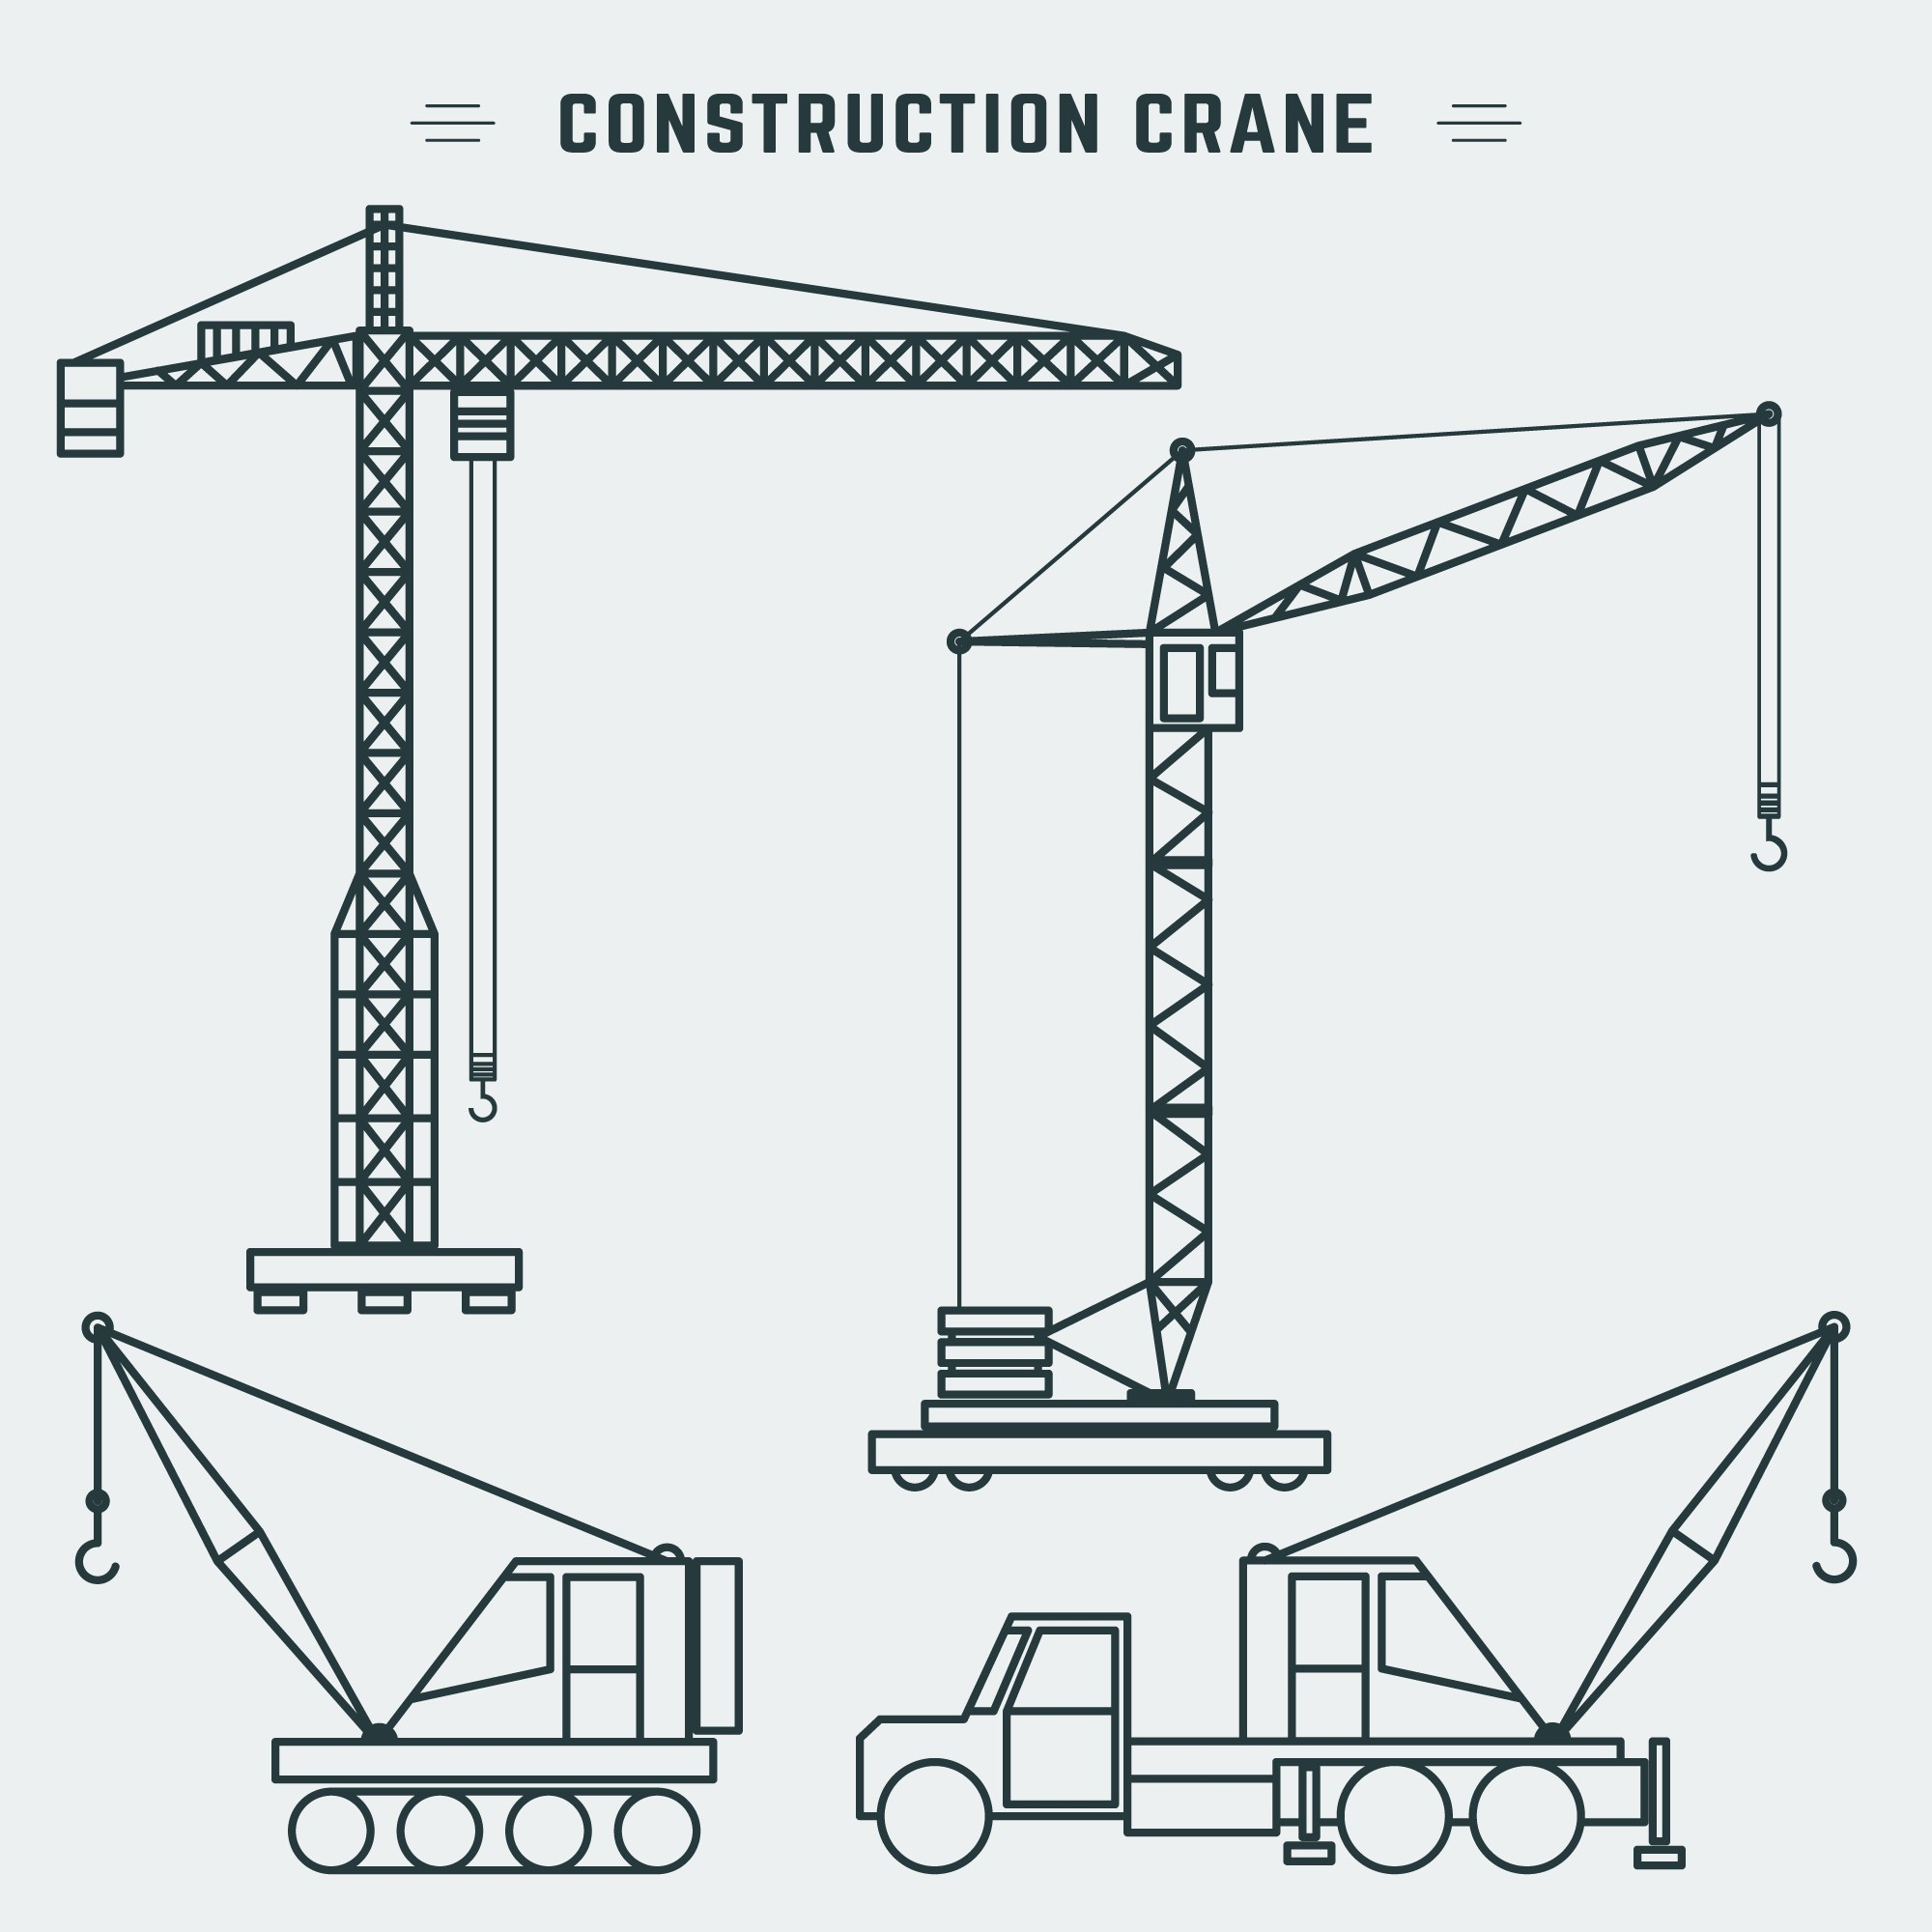 hight resolution of line design construction crane download free vector art stock graphics images